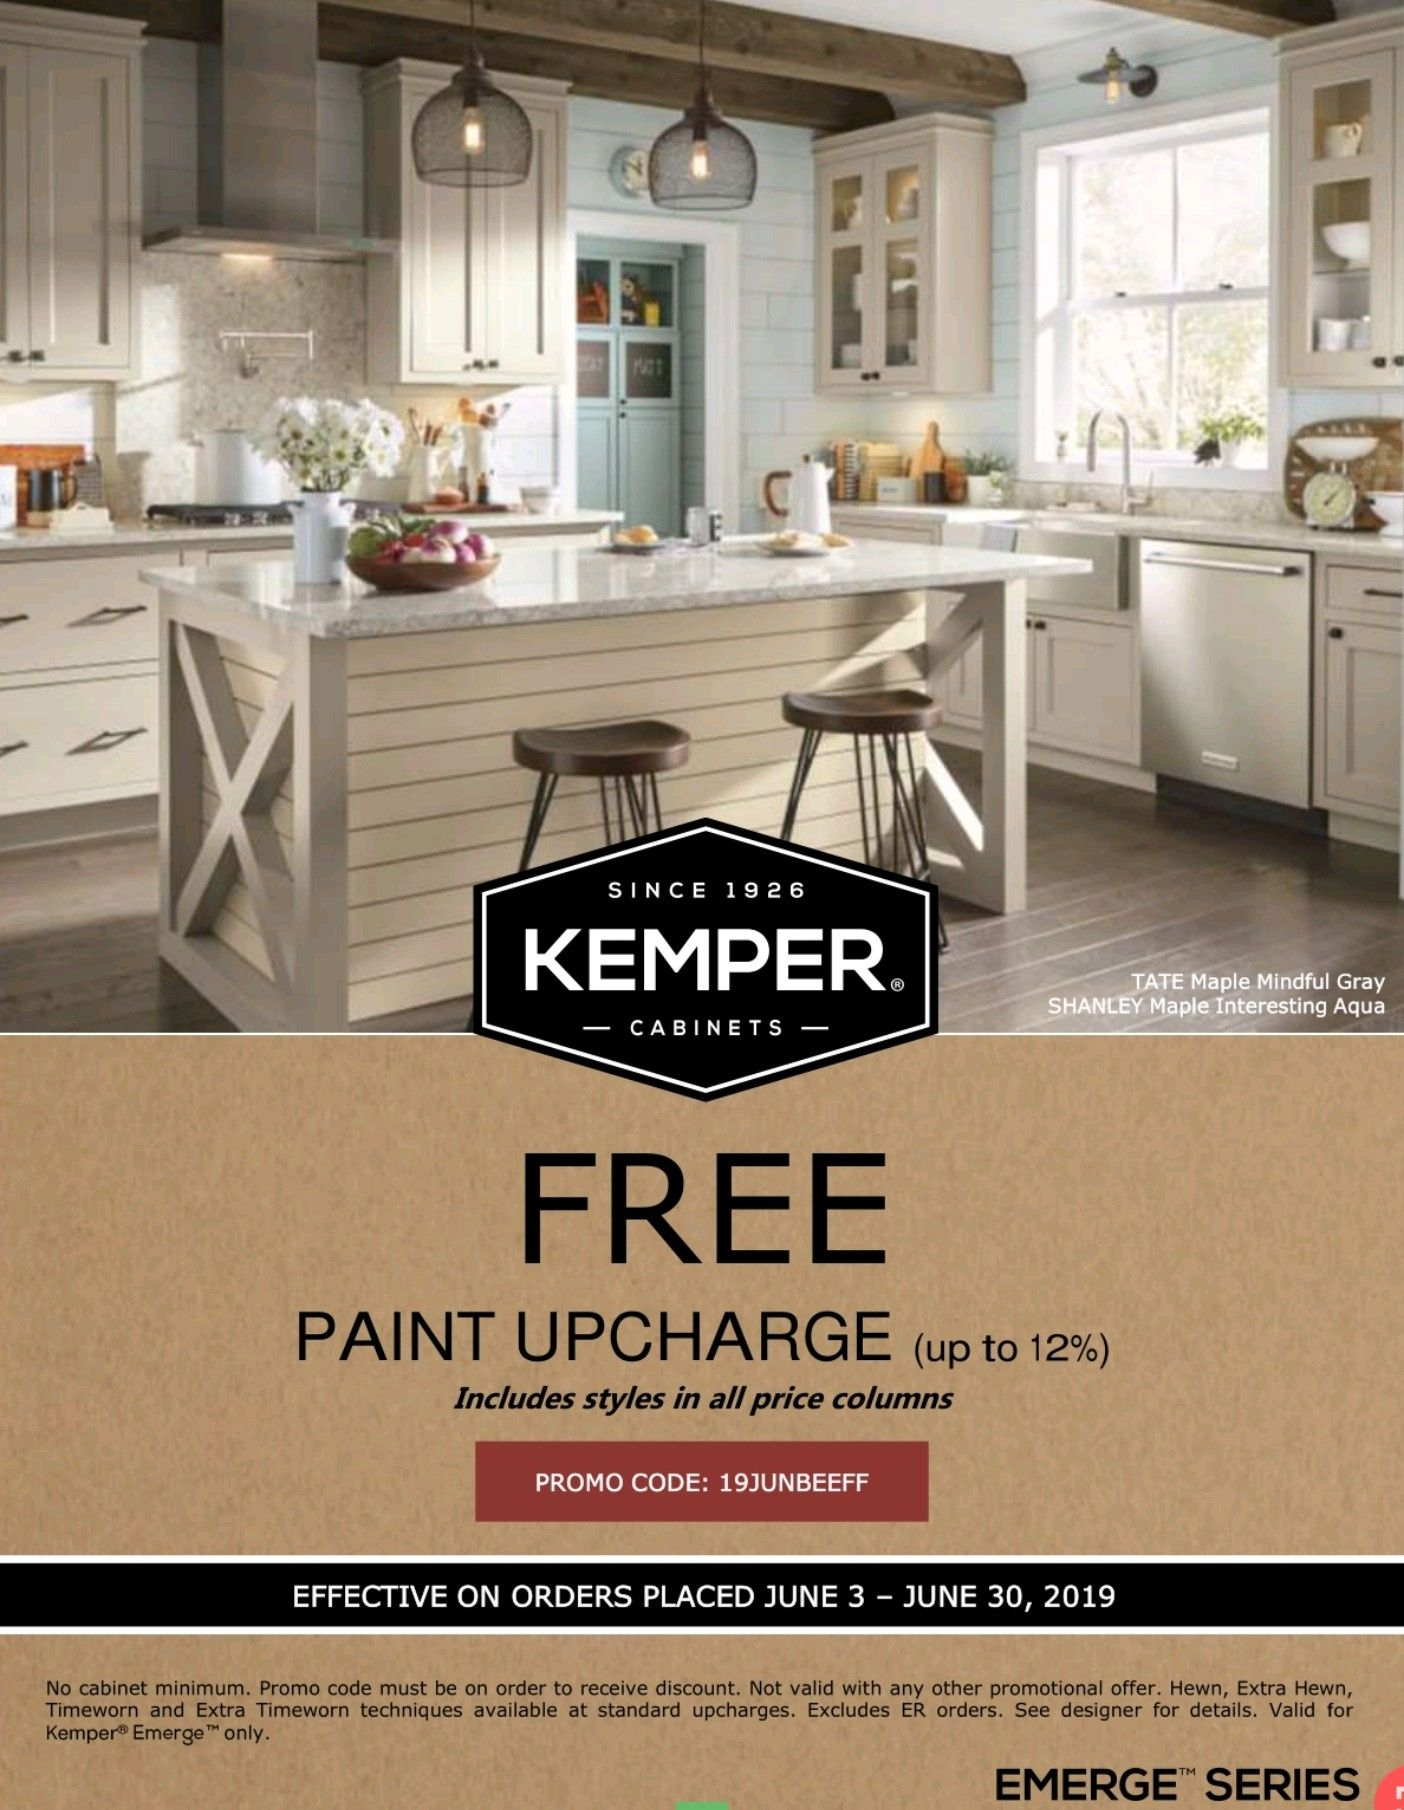 Free Paint 12 15 Savings Kemper And Emerge Now Til June 30 2019 Kitchensales Knoxvilletn Knoxville Kitchen Sale Discount Kitchen Cabinets Cabinets To Go